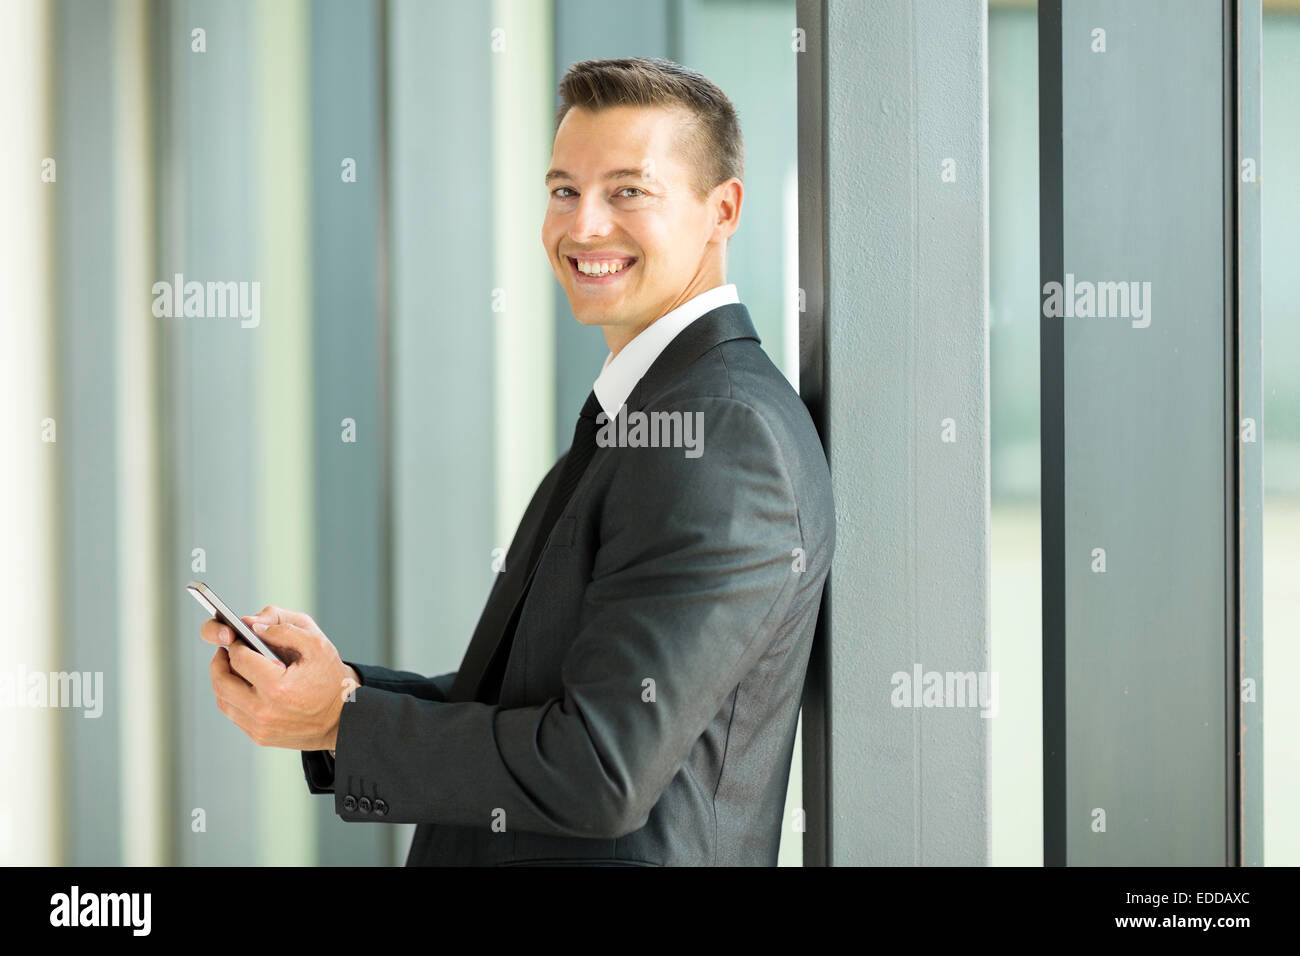 smiling businessman reading email on smart phone - Stock Image